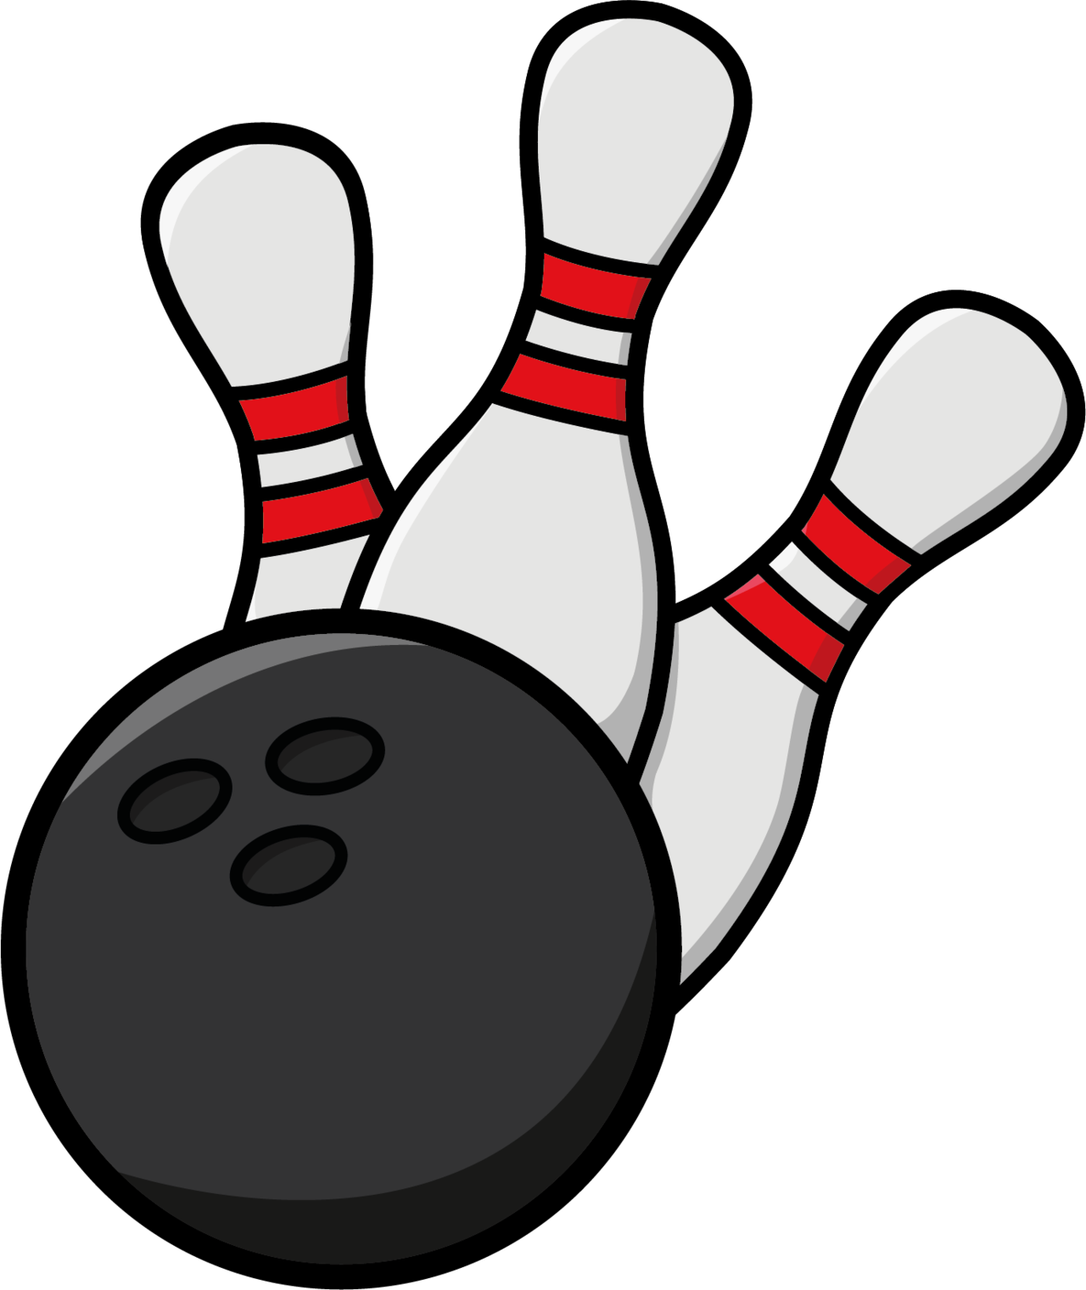 Bowling alley clipart png transparent download Bowling alley clip art clipart images gallery for free download ... png transparent download